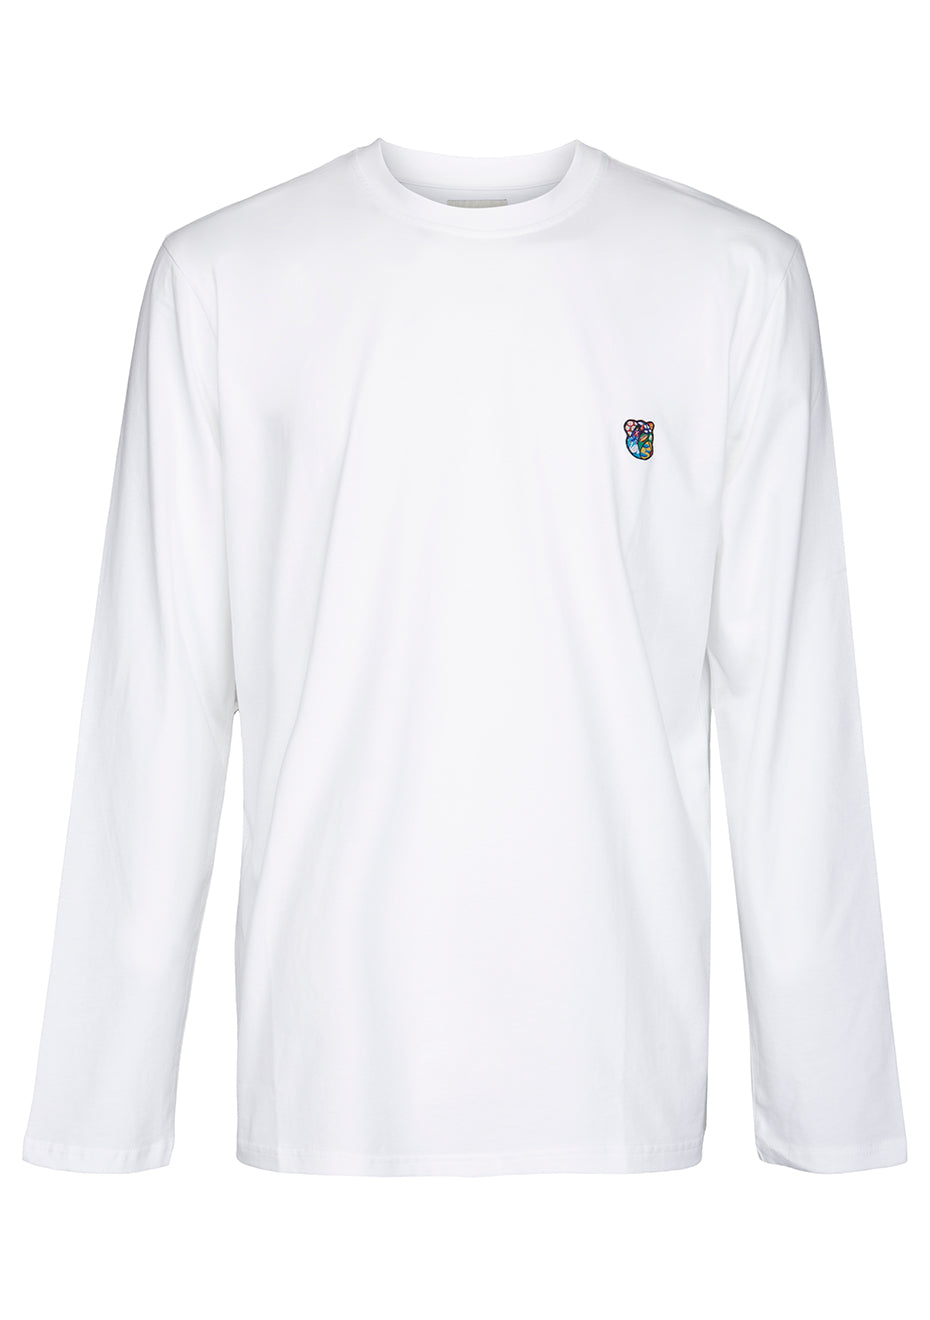 White David Long Sleeve